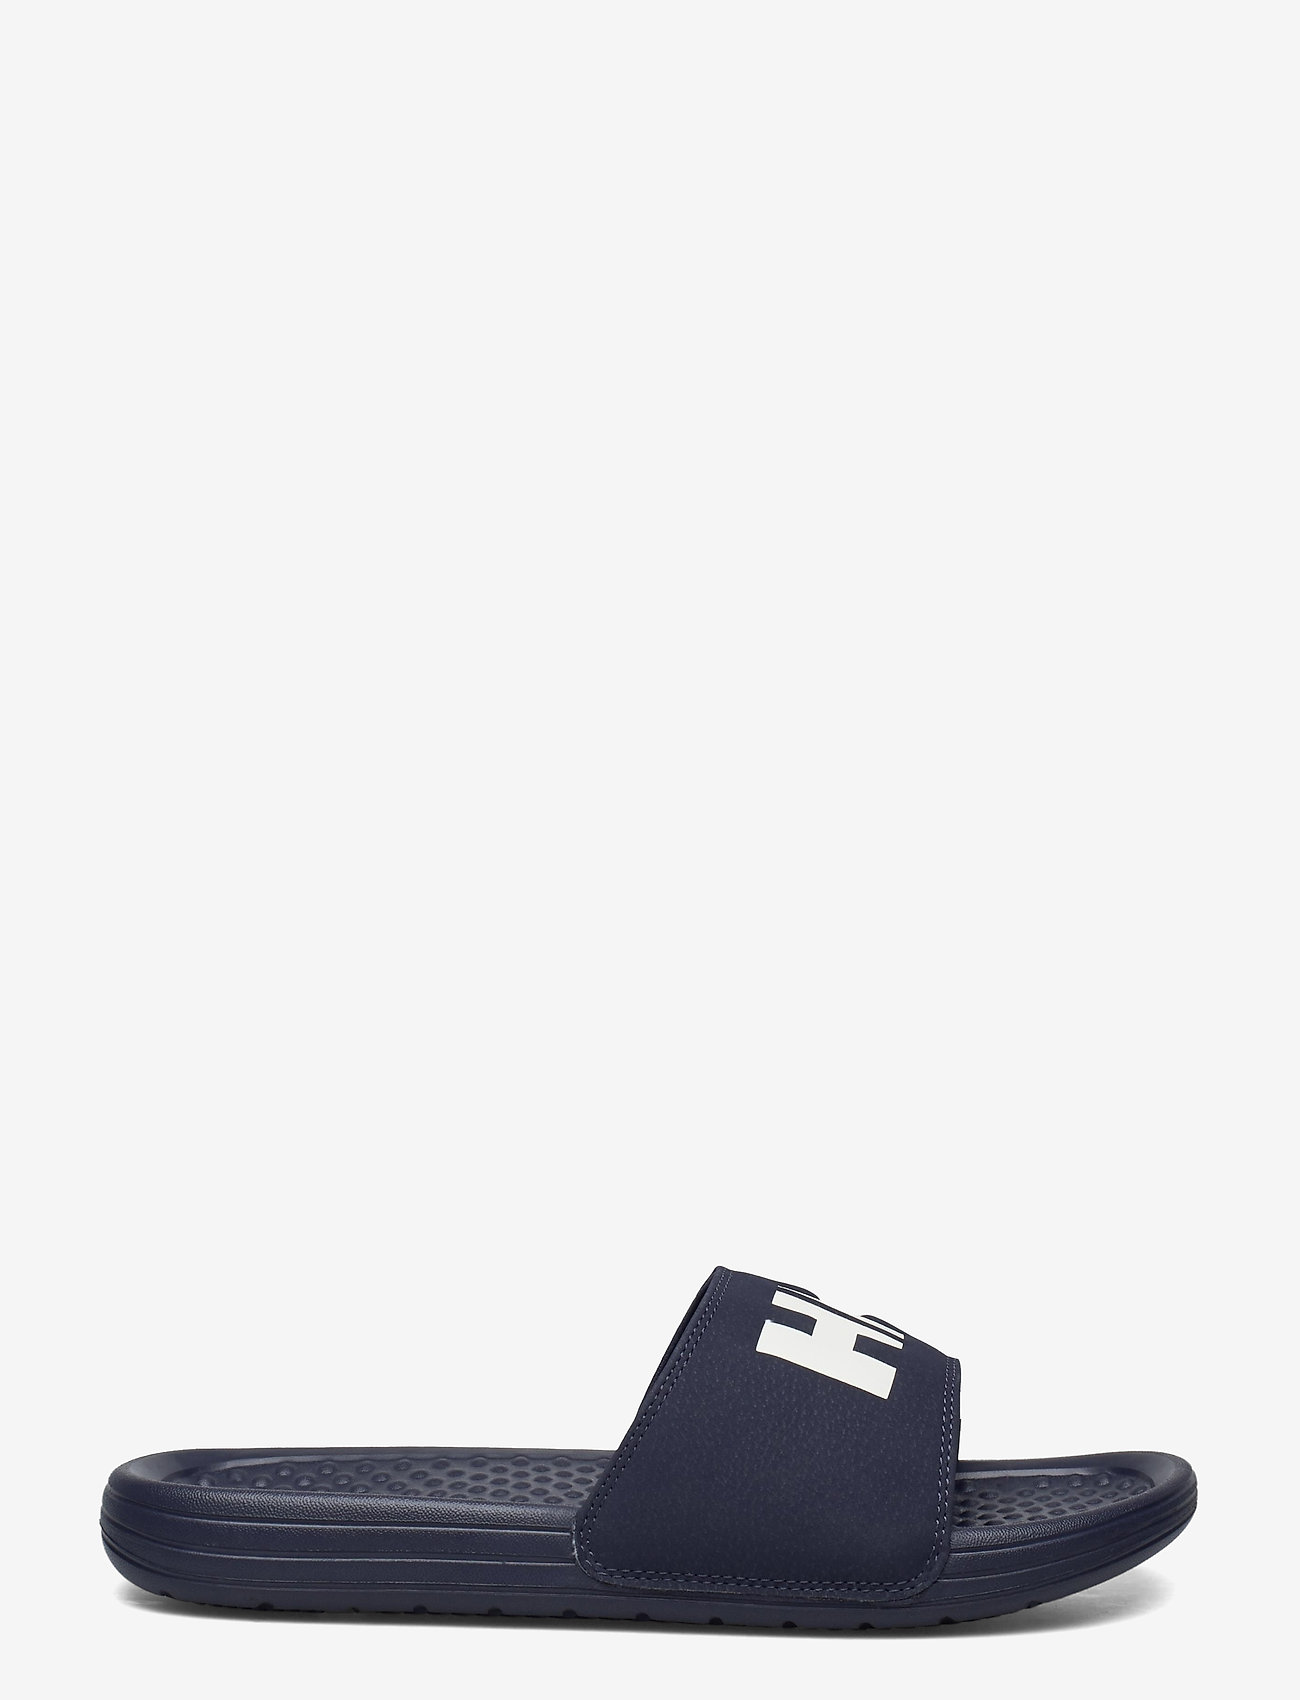 Helly Hansen - H/H SLIDE - pool sliders - 599 dark sapphire / off white - 1